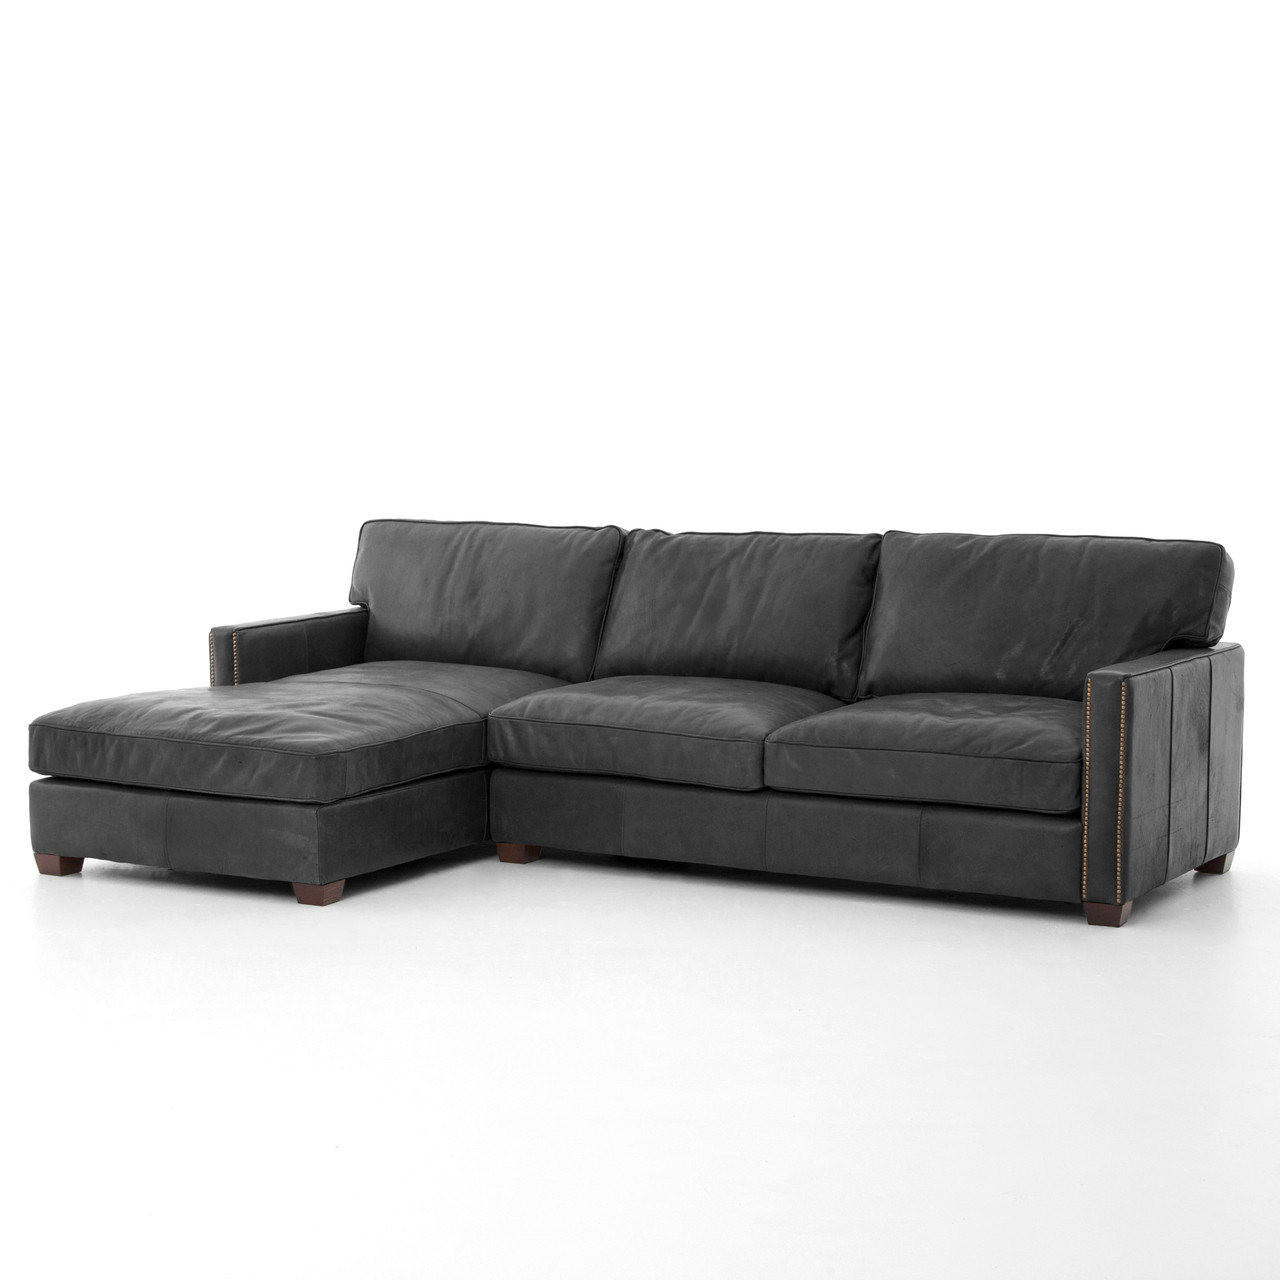 Larkin vintage black leather sectional sofa with chaise for Black sectional with chaise